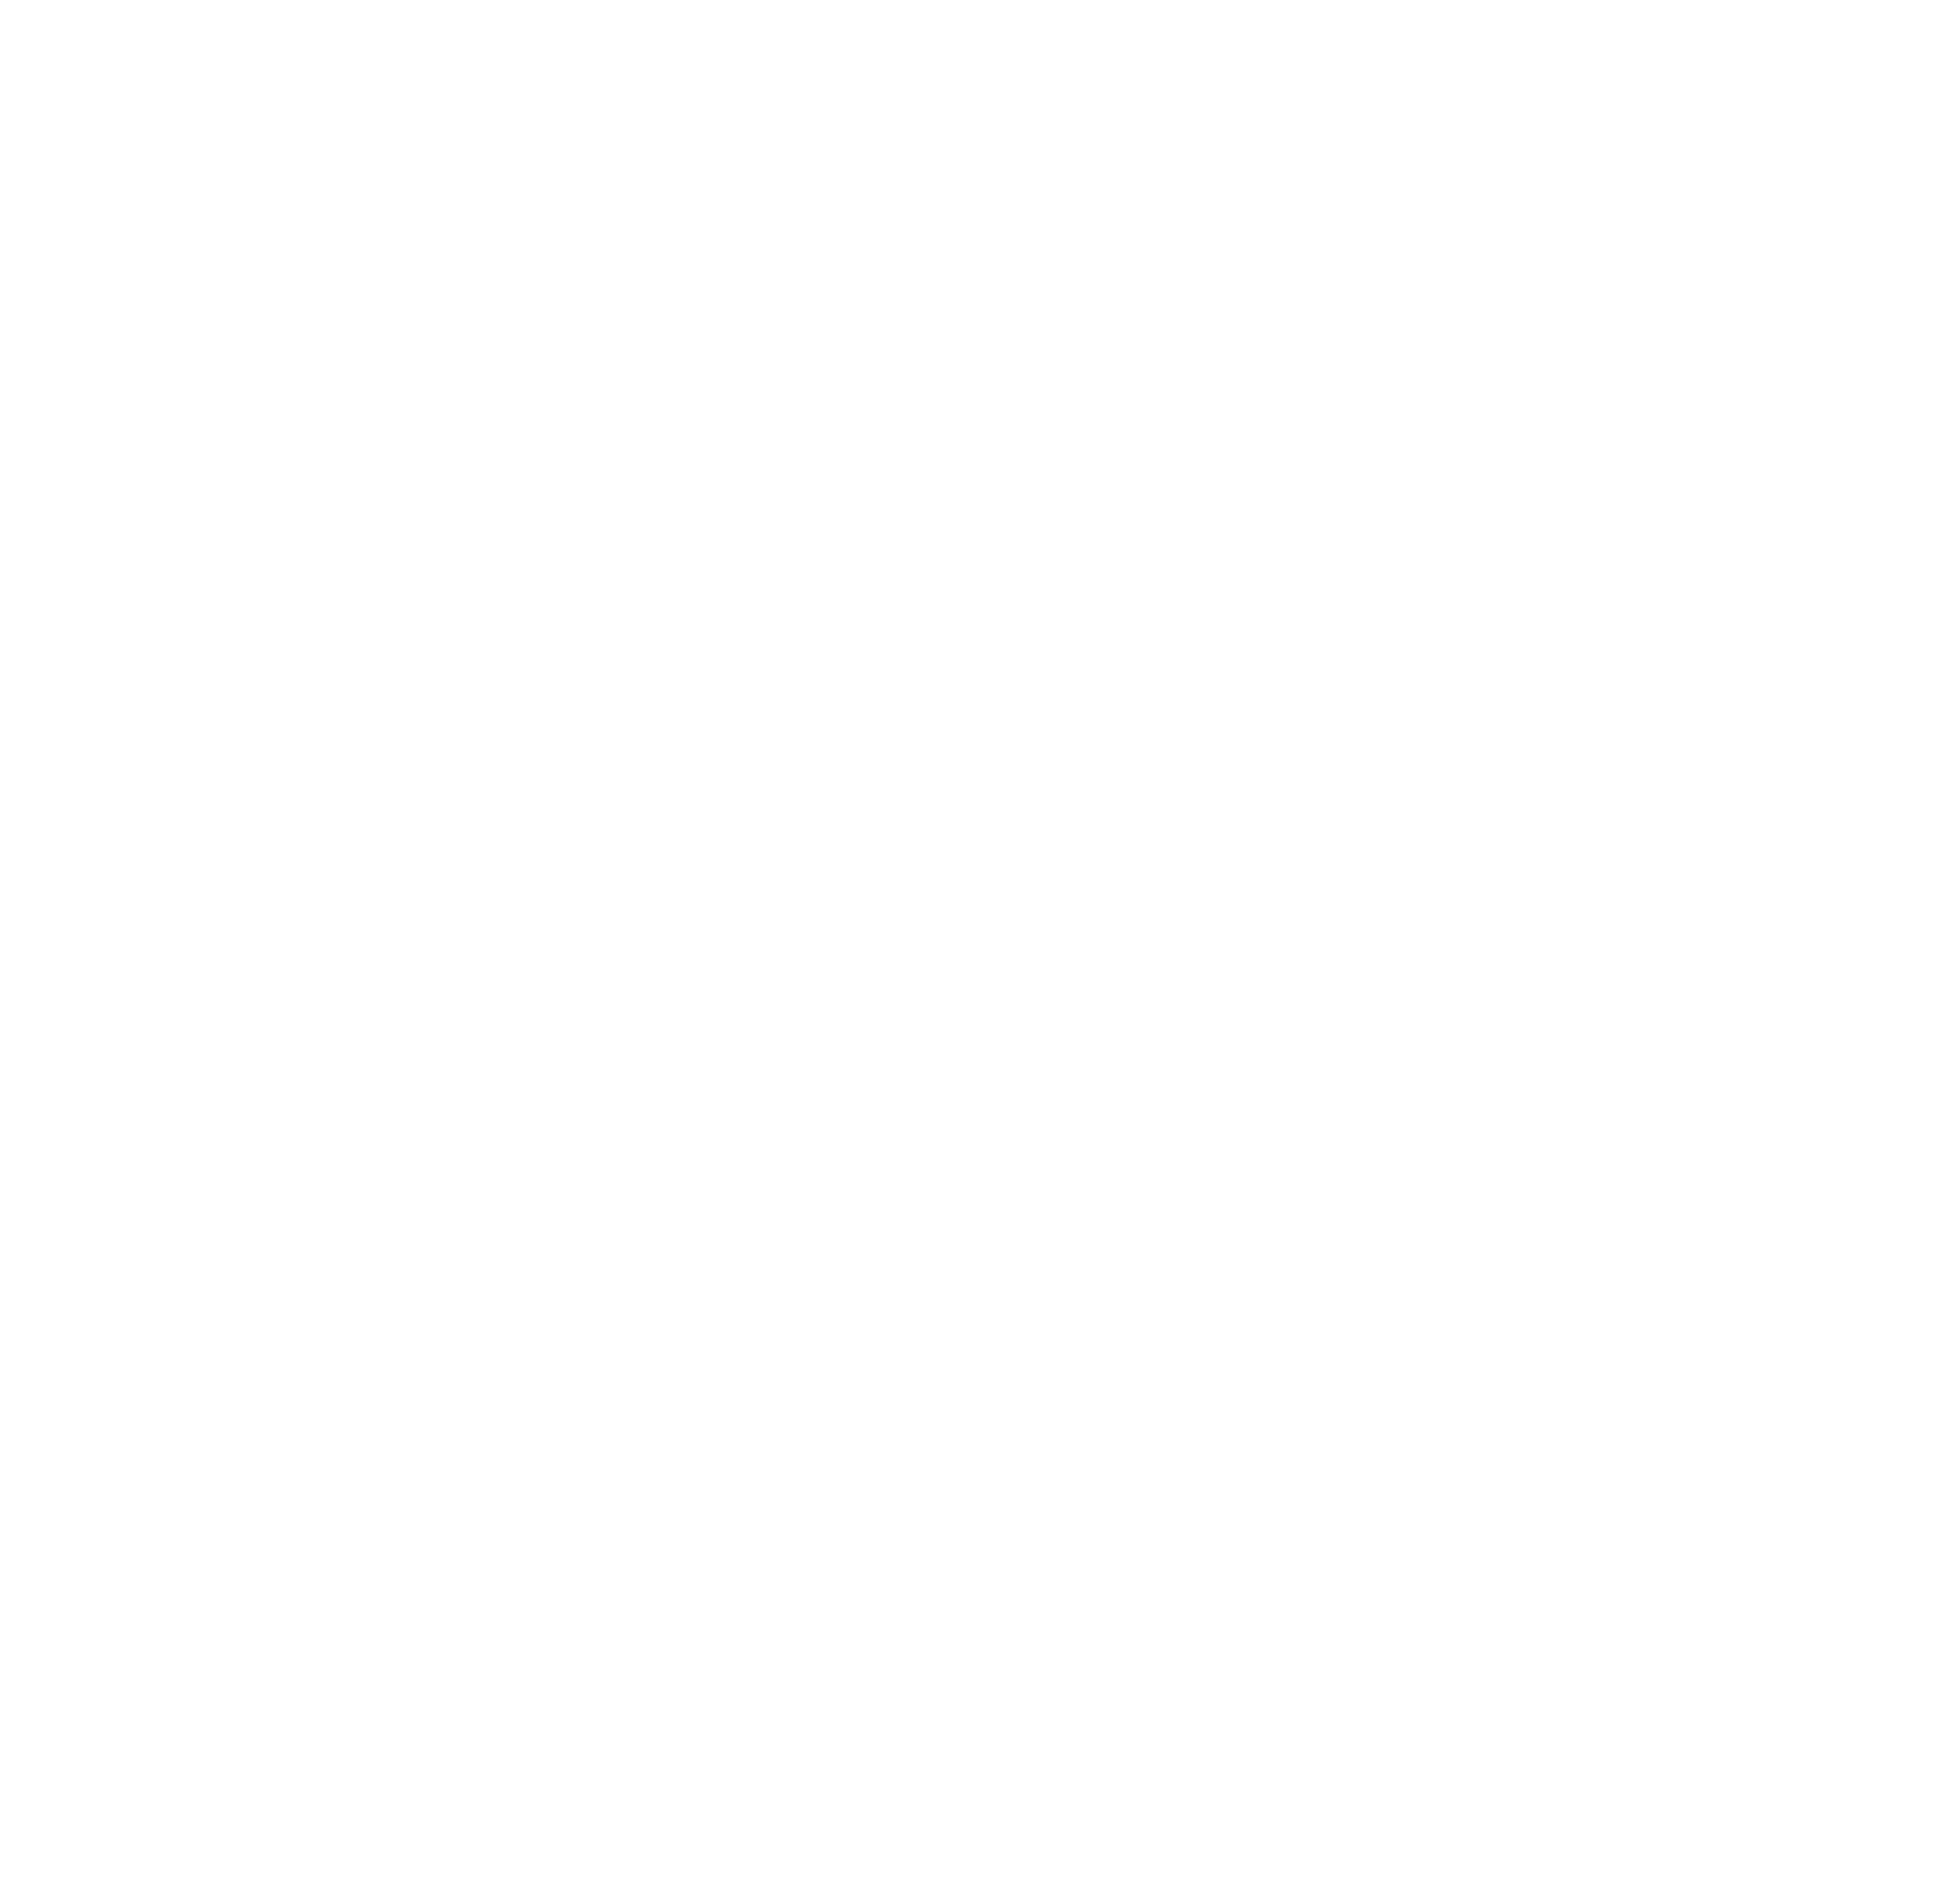 The Goodwash Company